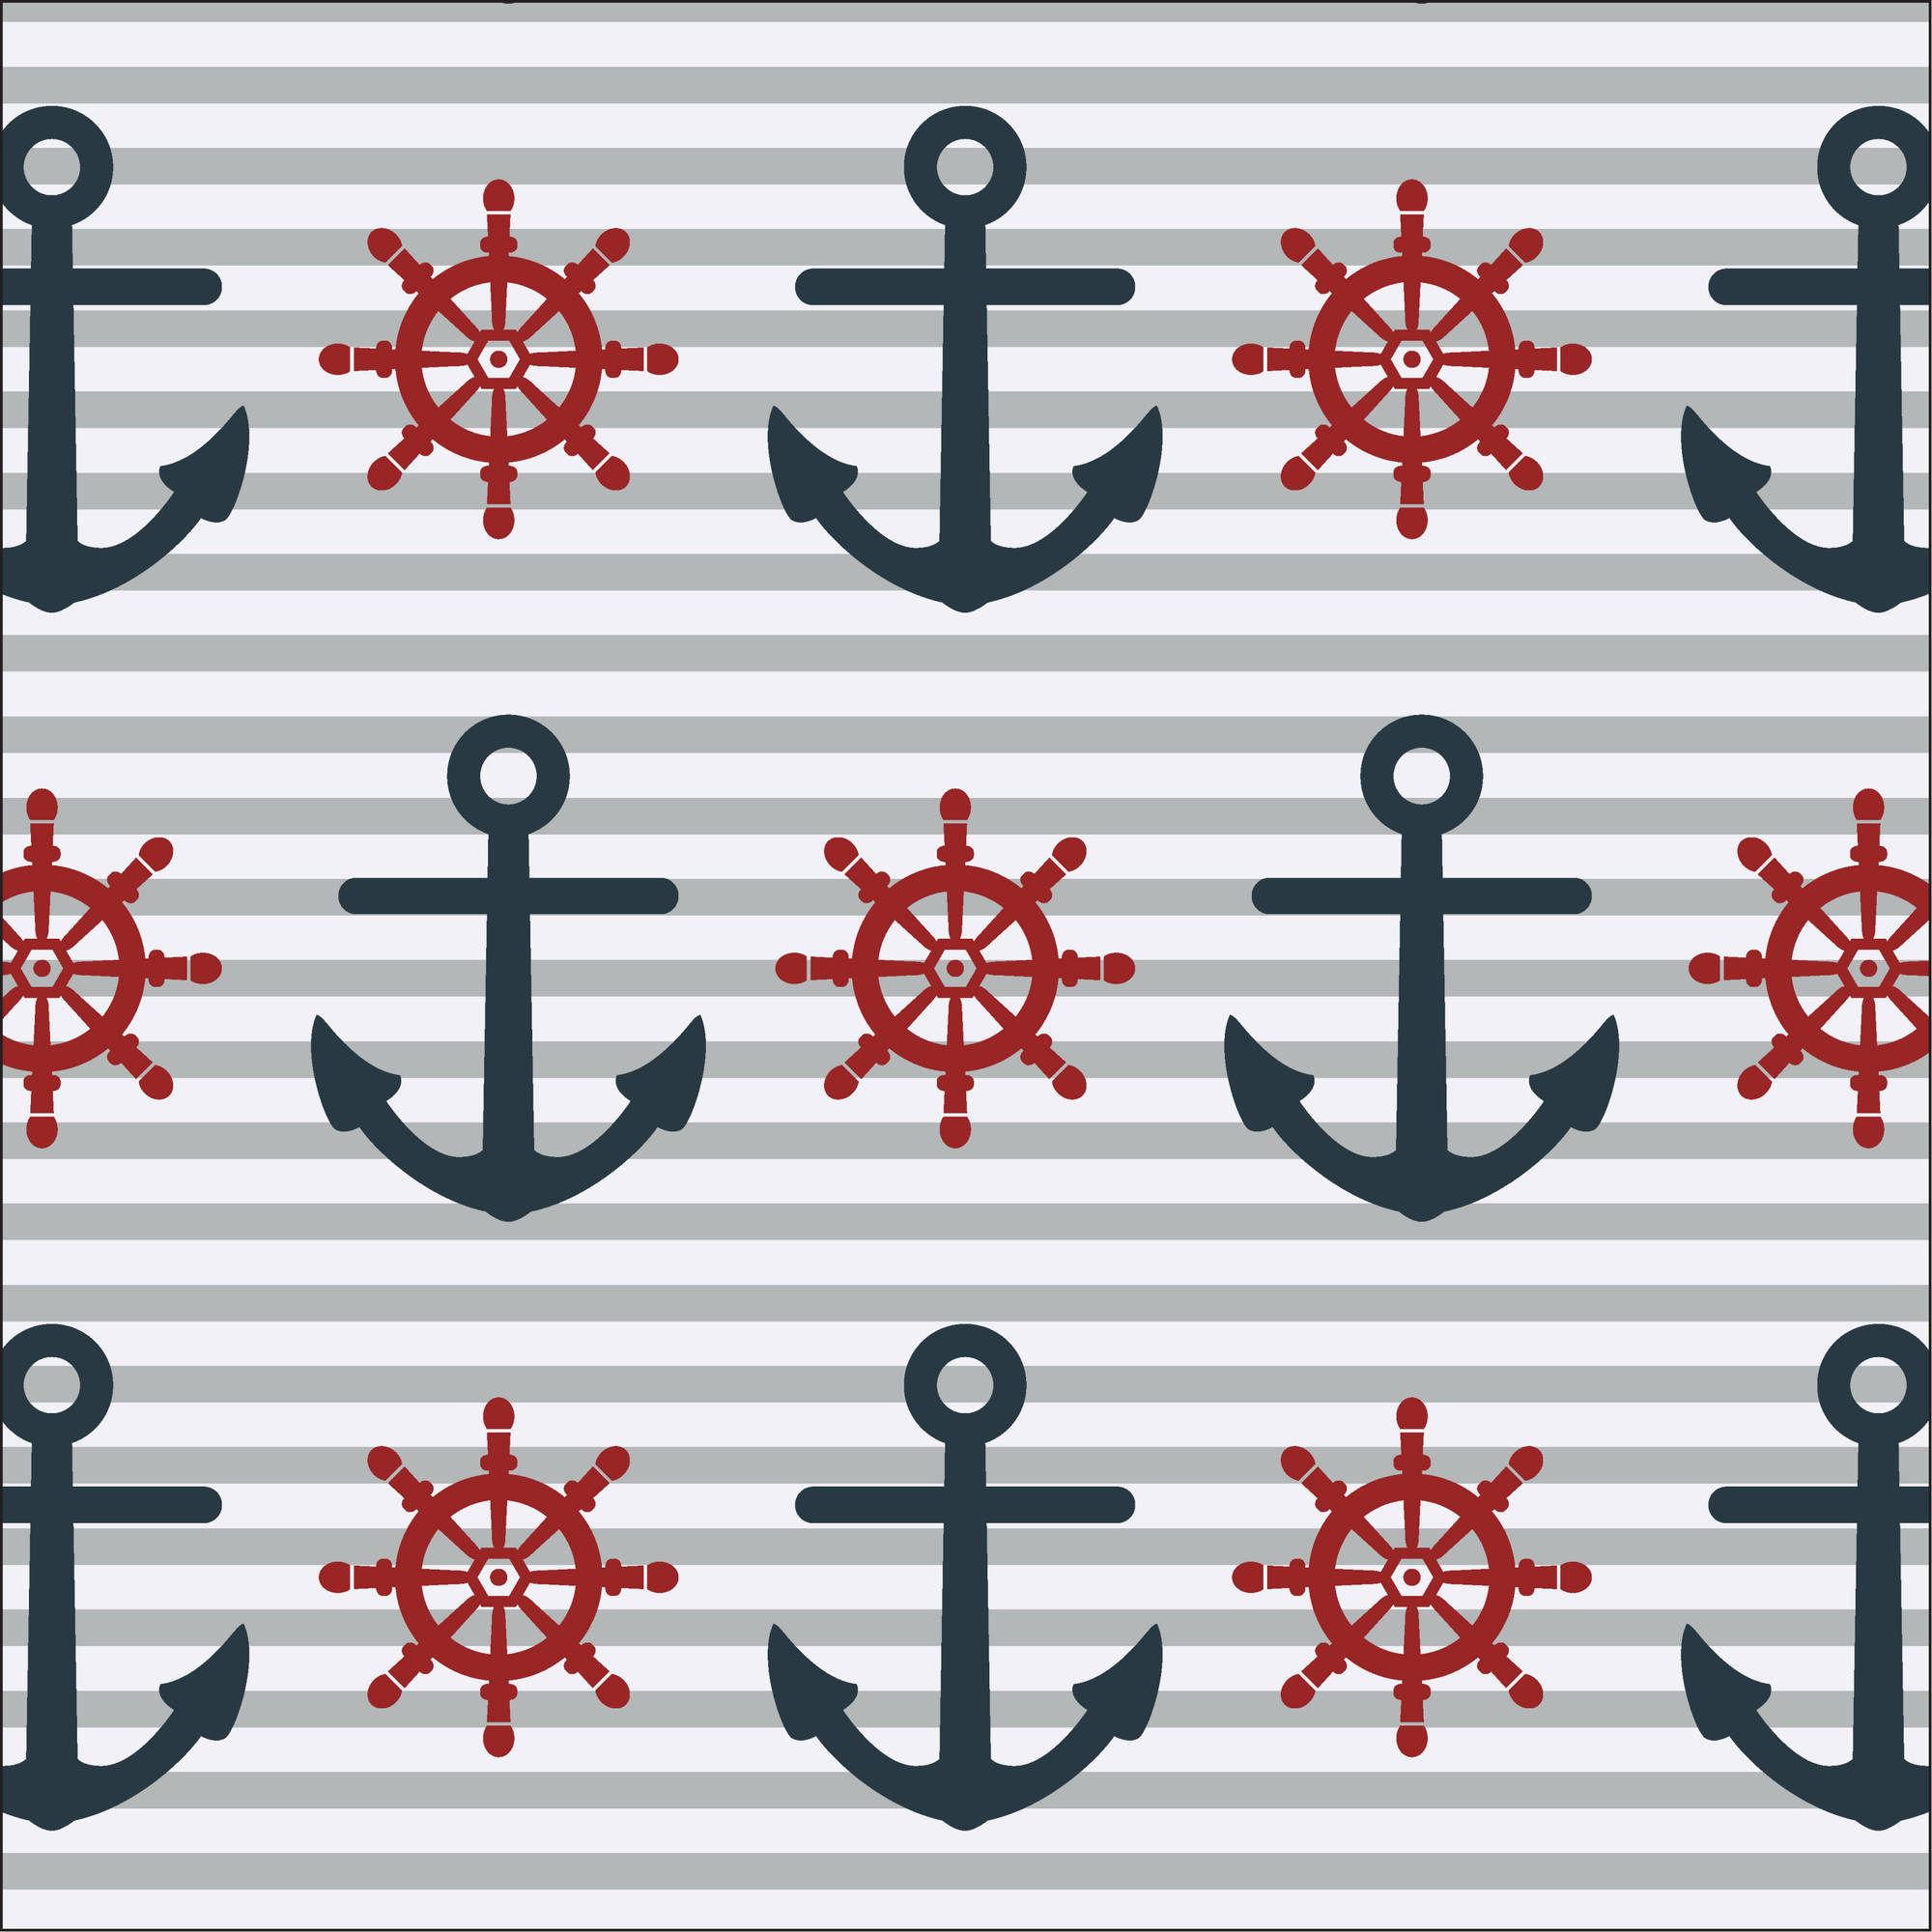 Waverly Inspirations ANCHORS INK 100% Cotton Print fabric, Quilting fabric, Home Decor ,44'', 140GSM